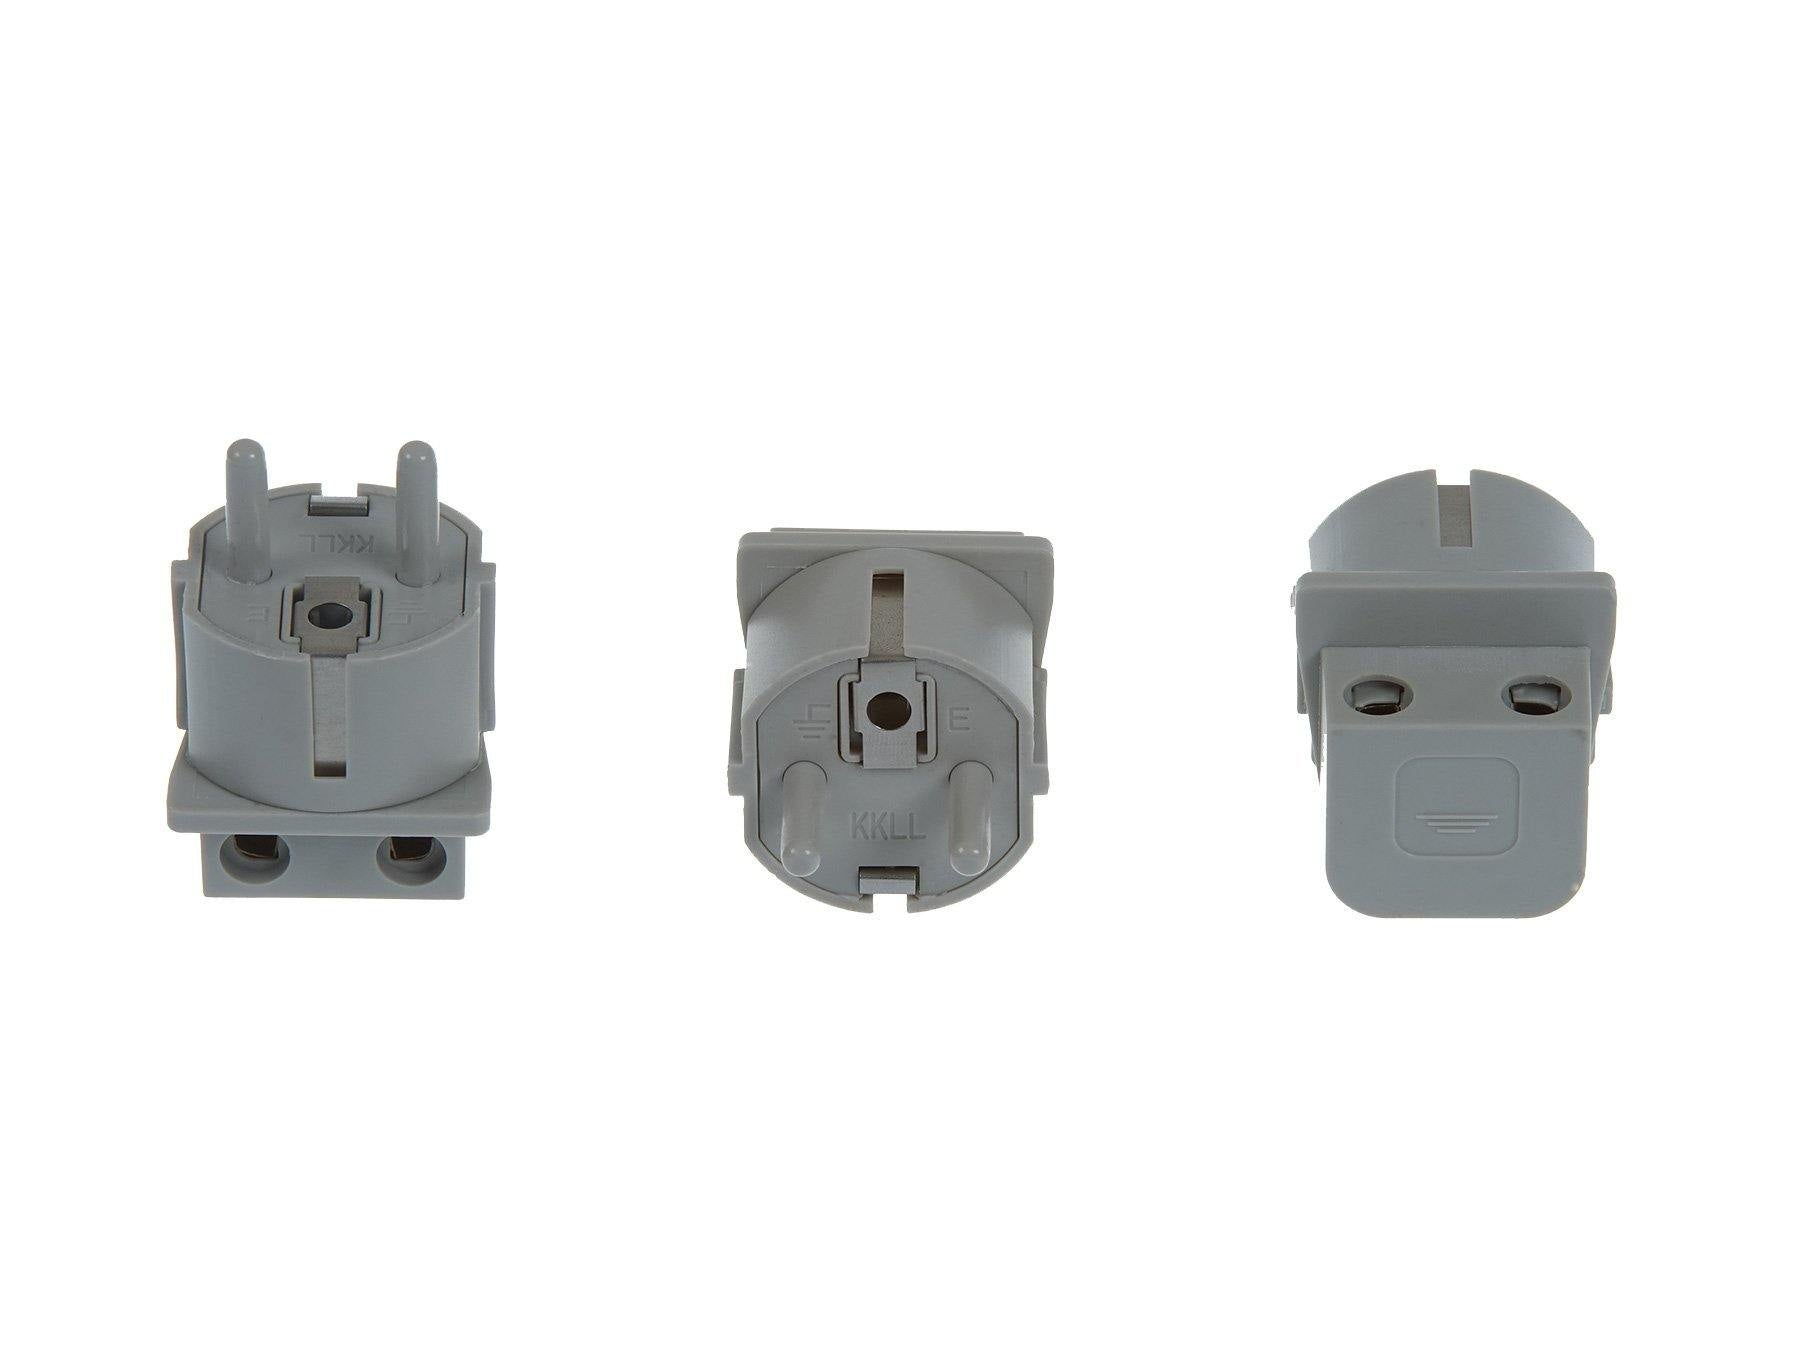 Single Grounding Plug EU - Aarding